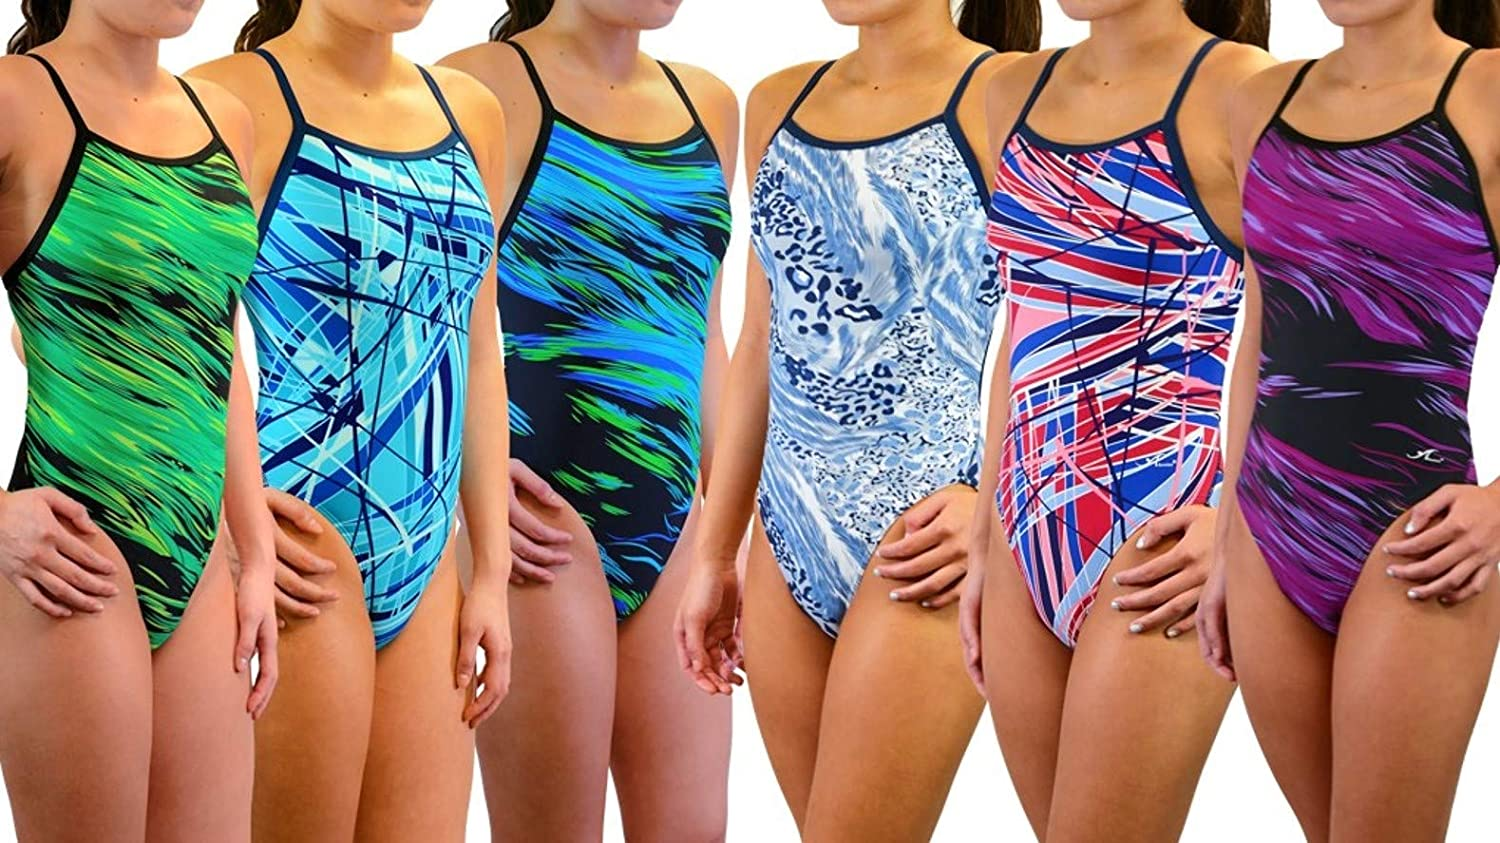 Adoretex Girls Womens Pro One Swimsuit National uniform free shipping Shipping included Strap Athletic Thin Piece